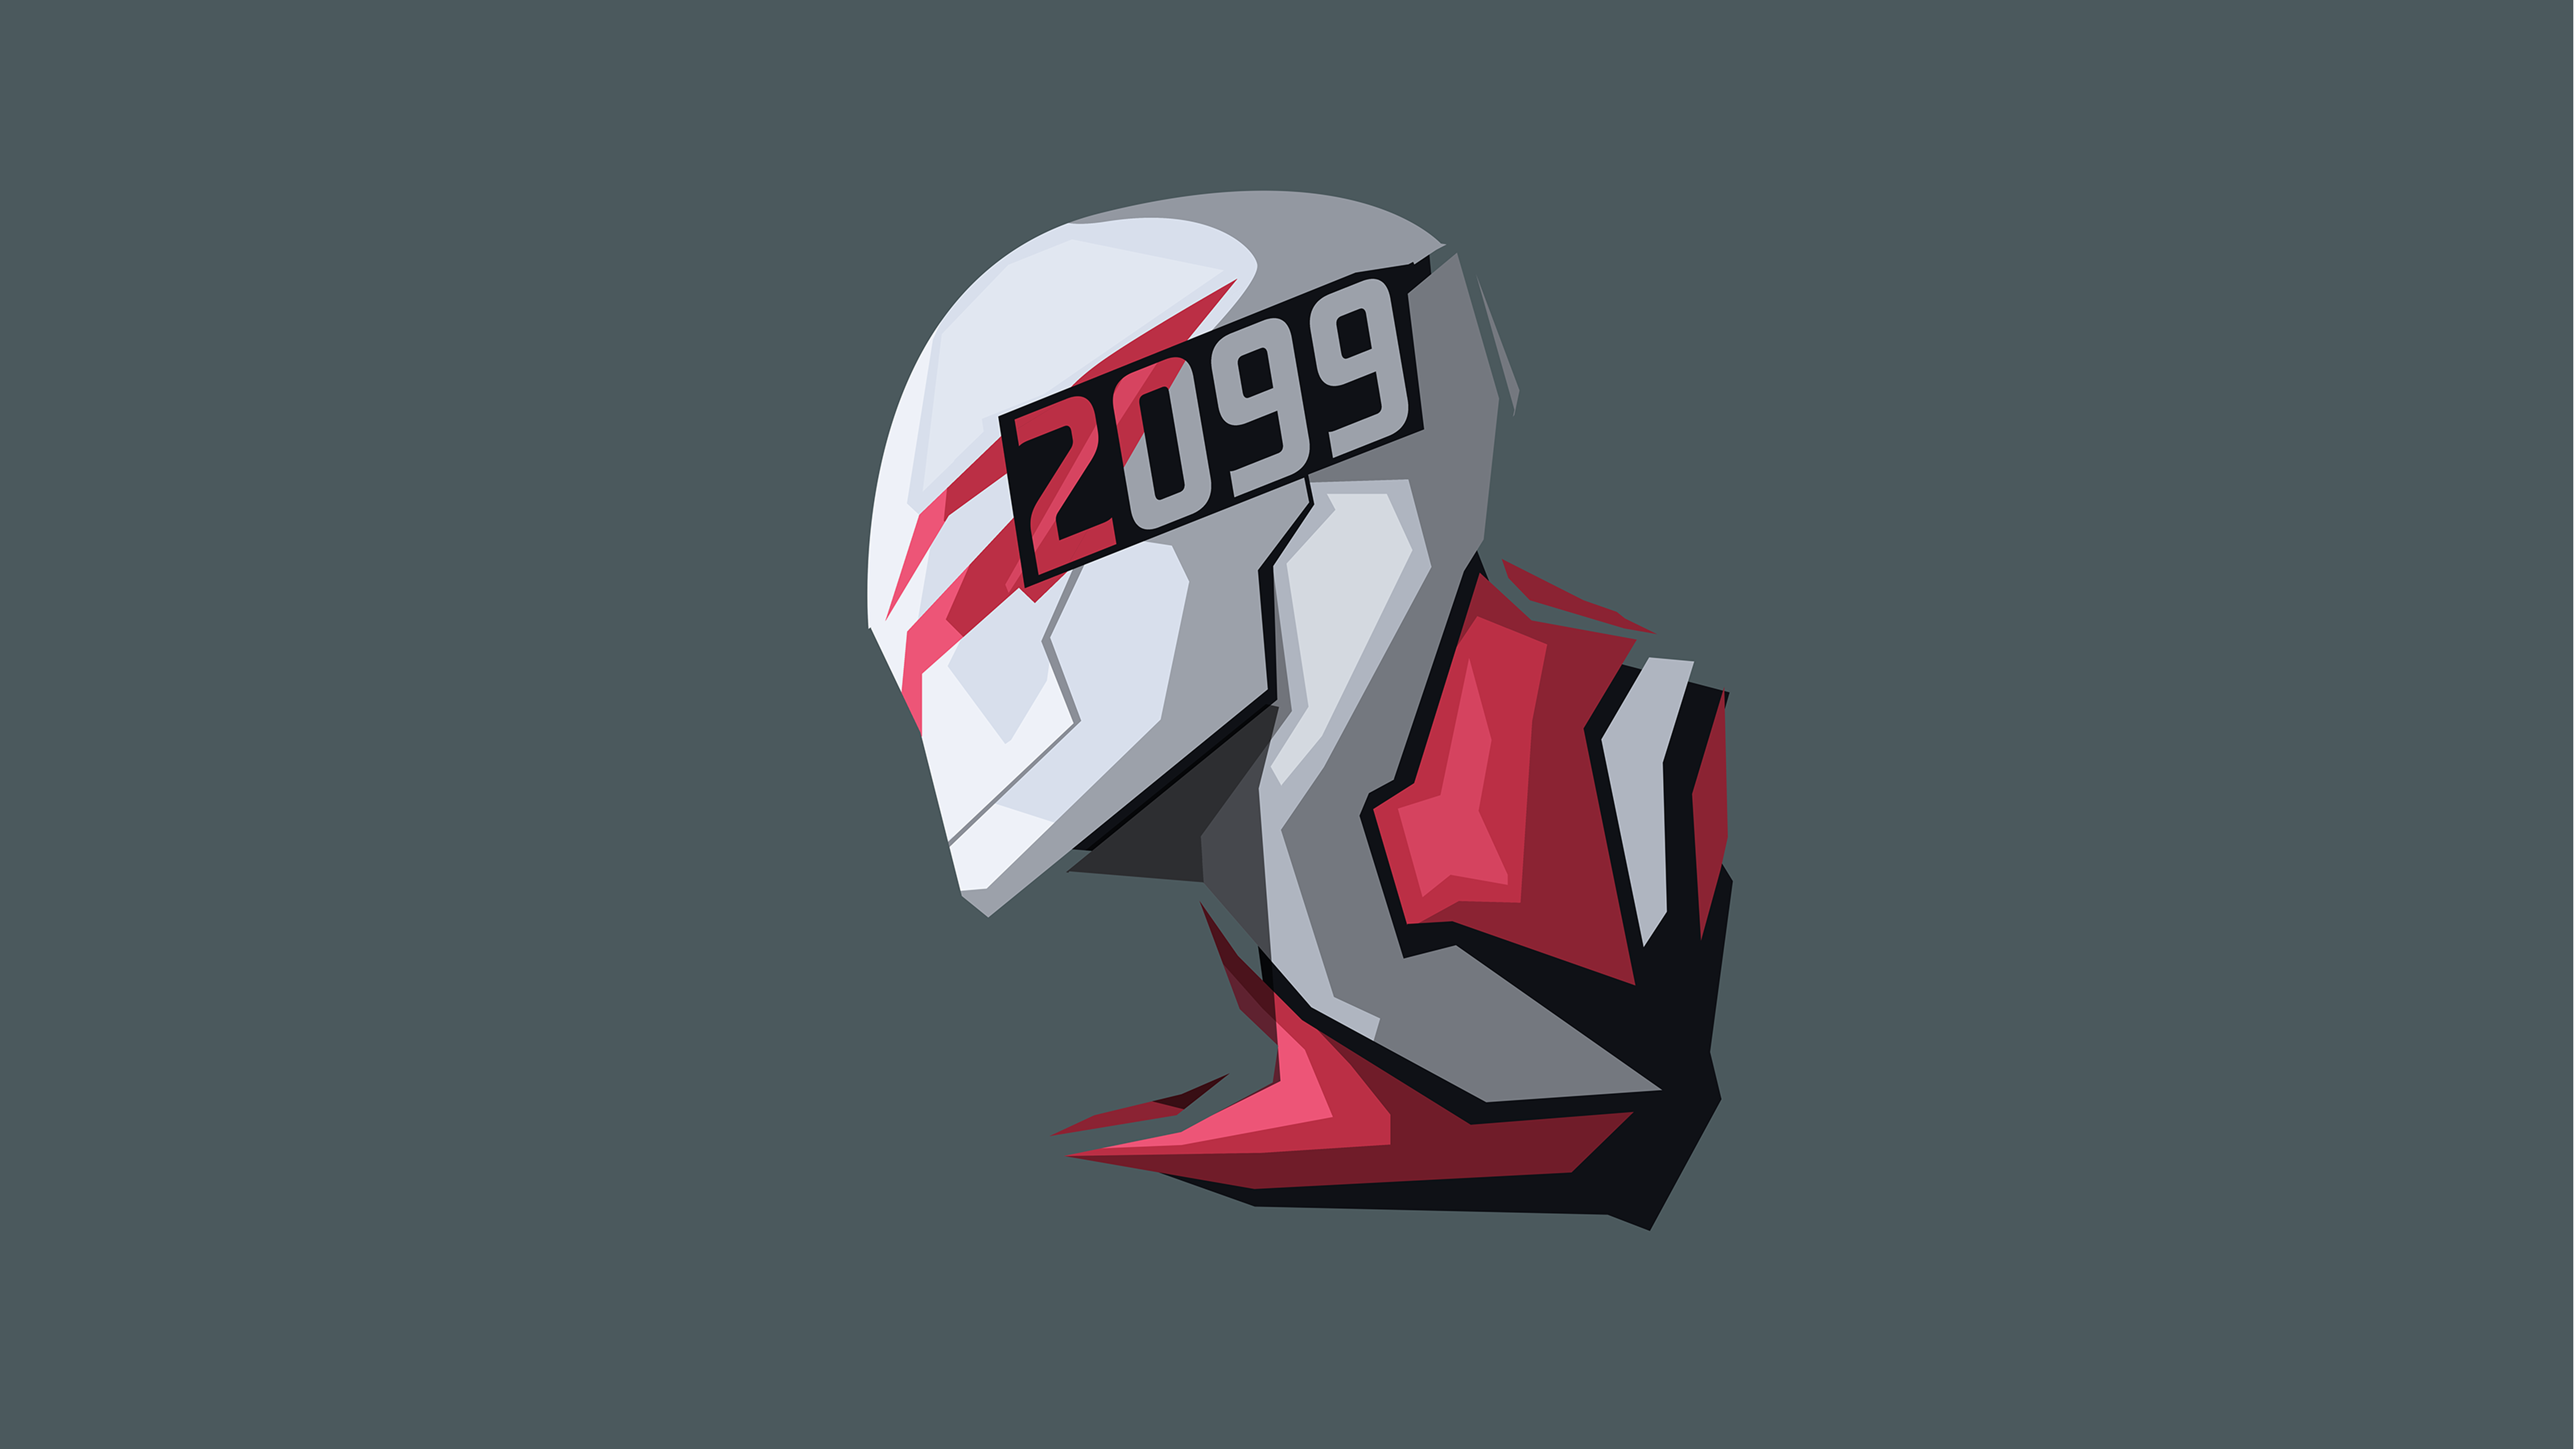 Spider Man 2099 Wallpapers ID937404